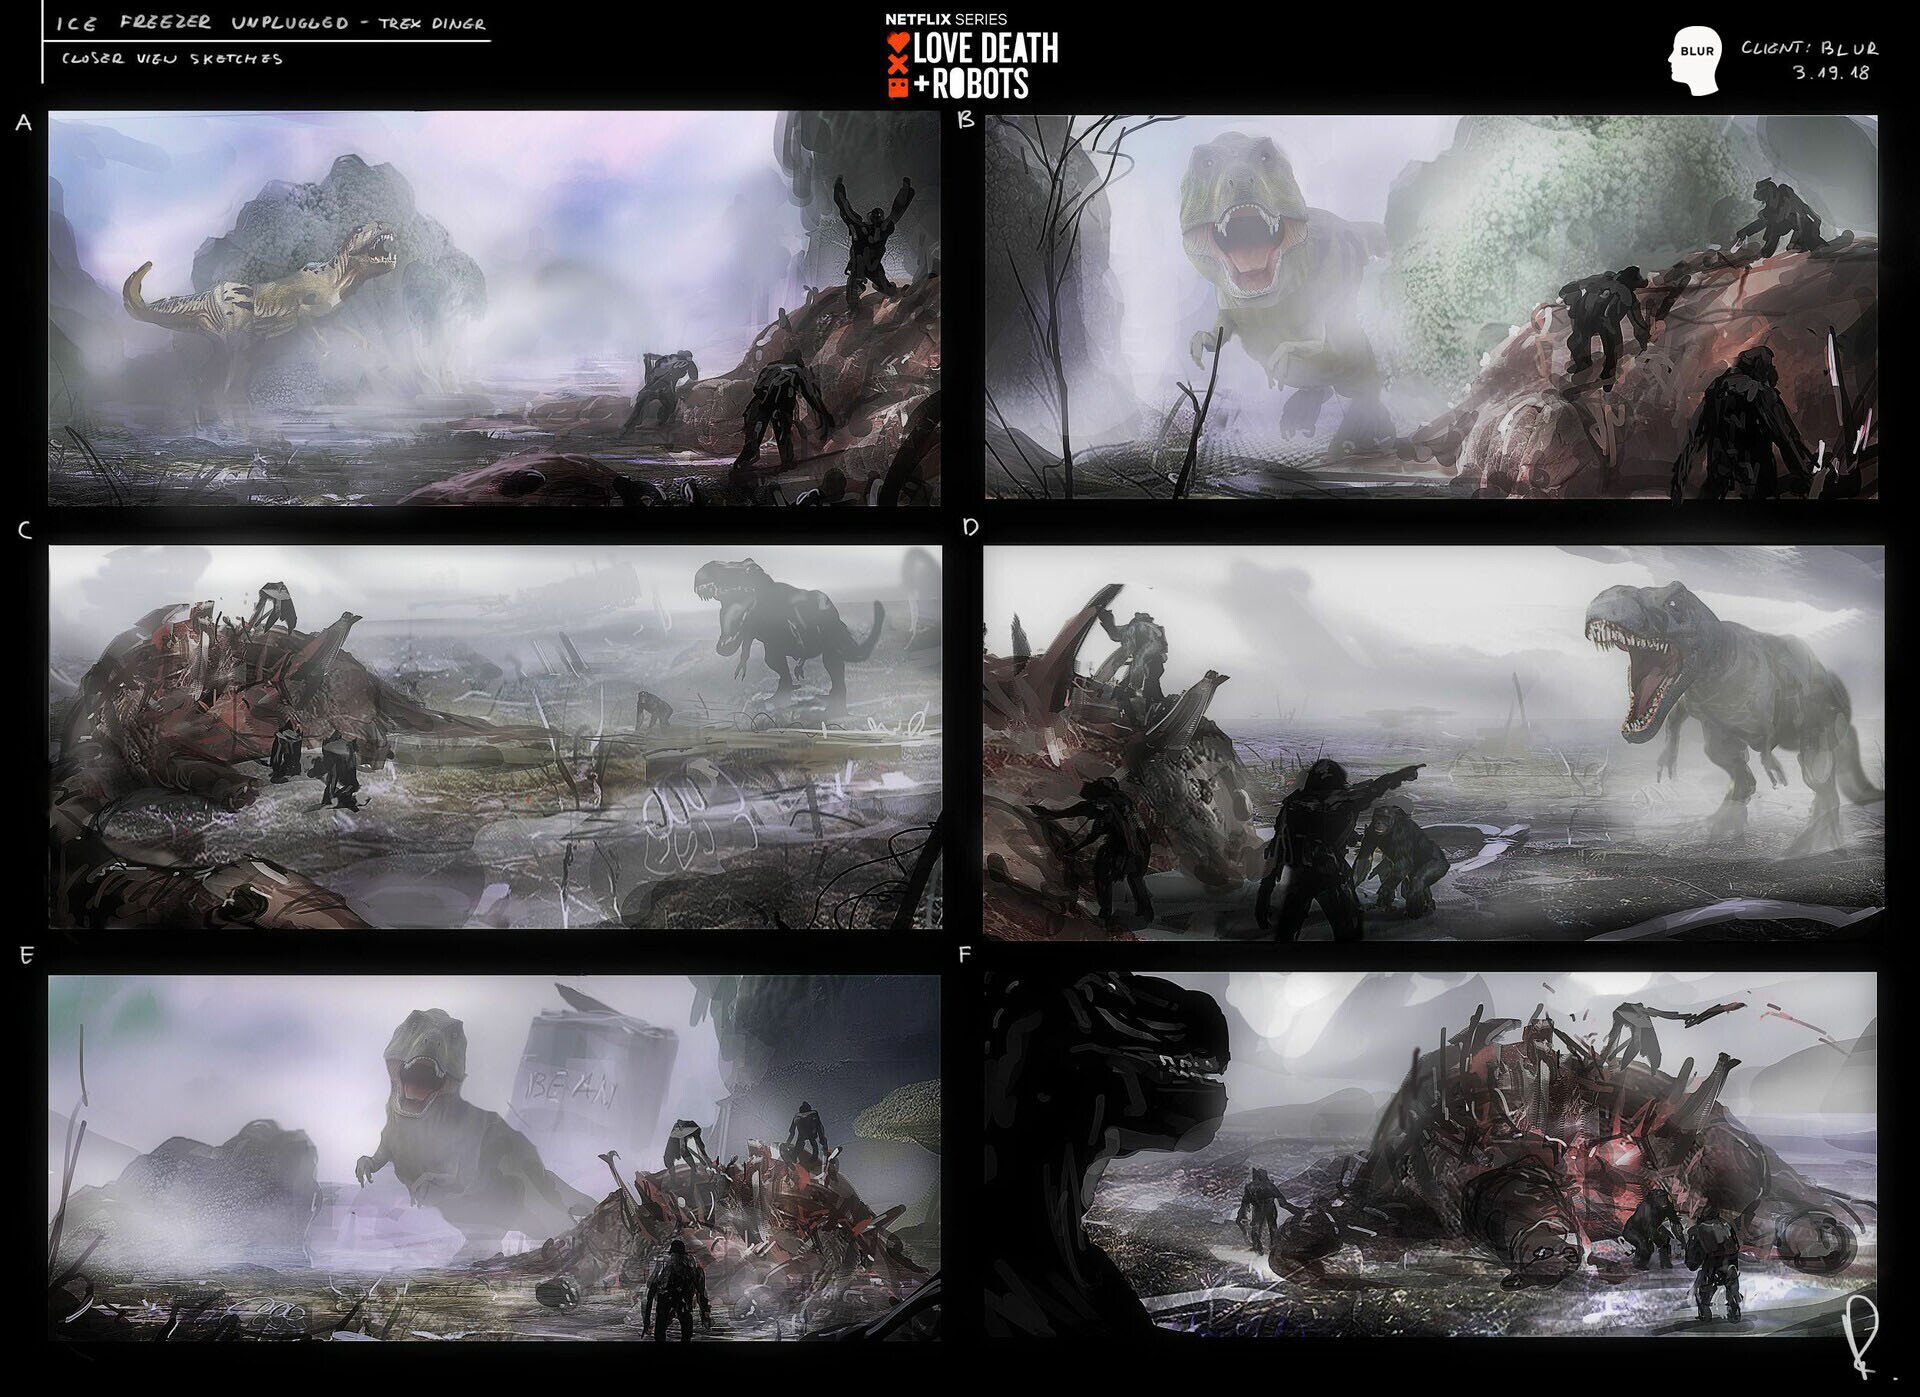 Trex grabs his Dinner in the Vegetables - concept art sketches